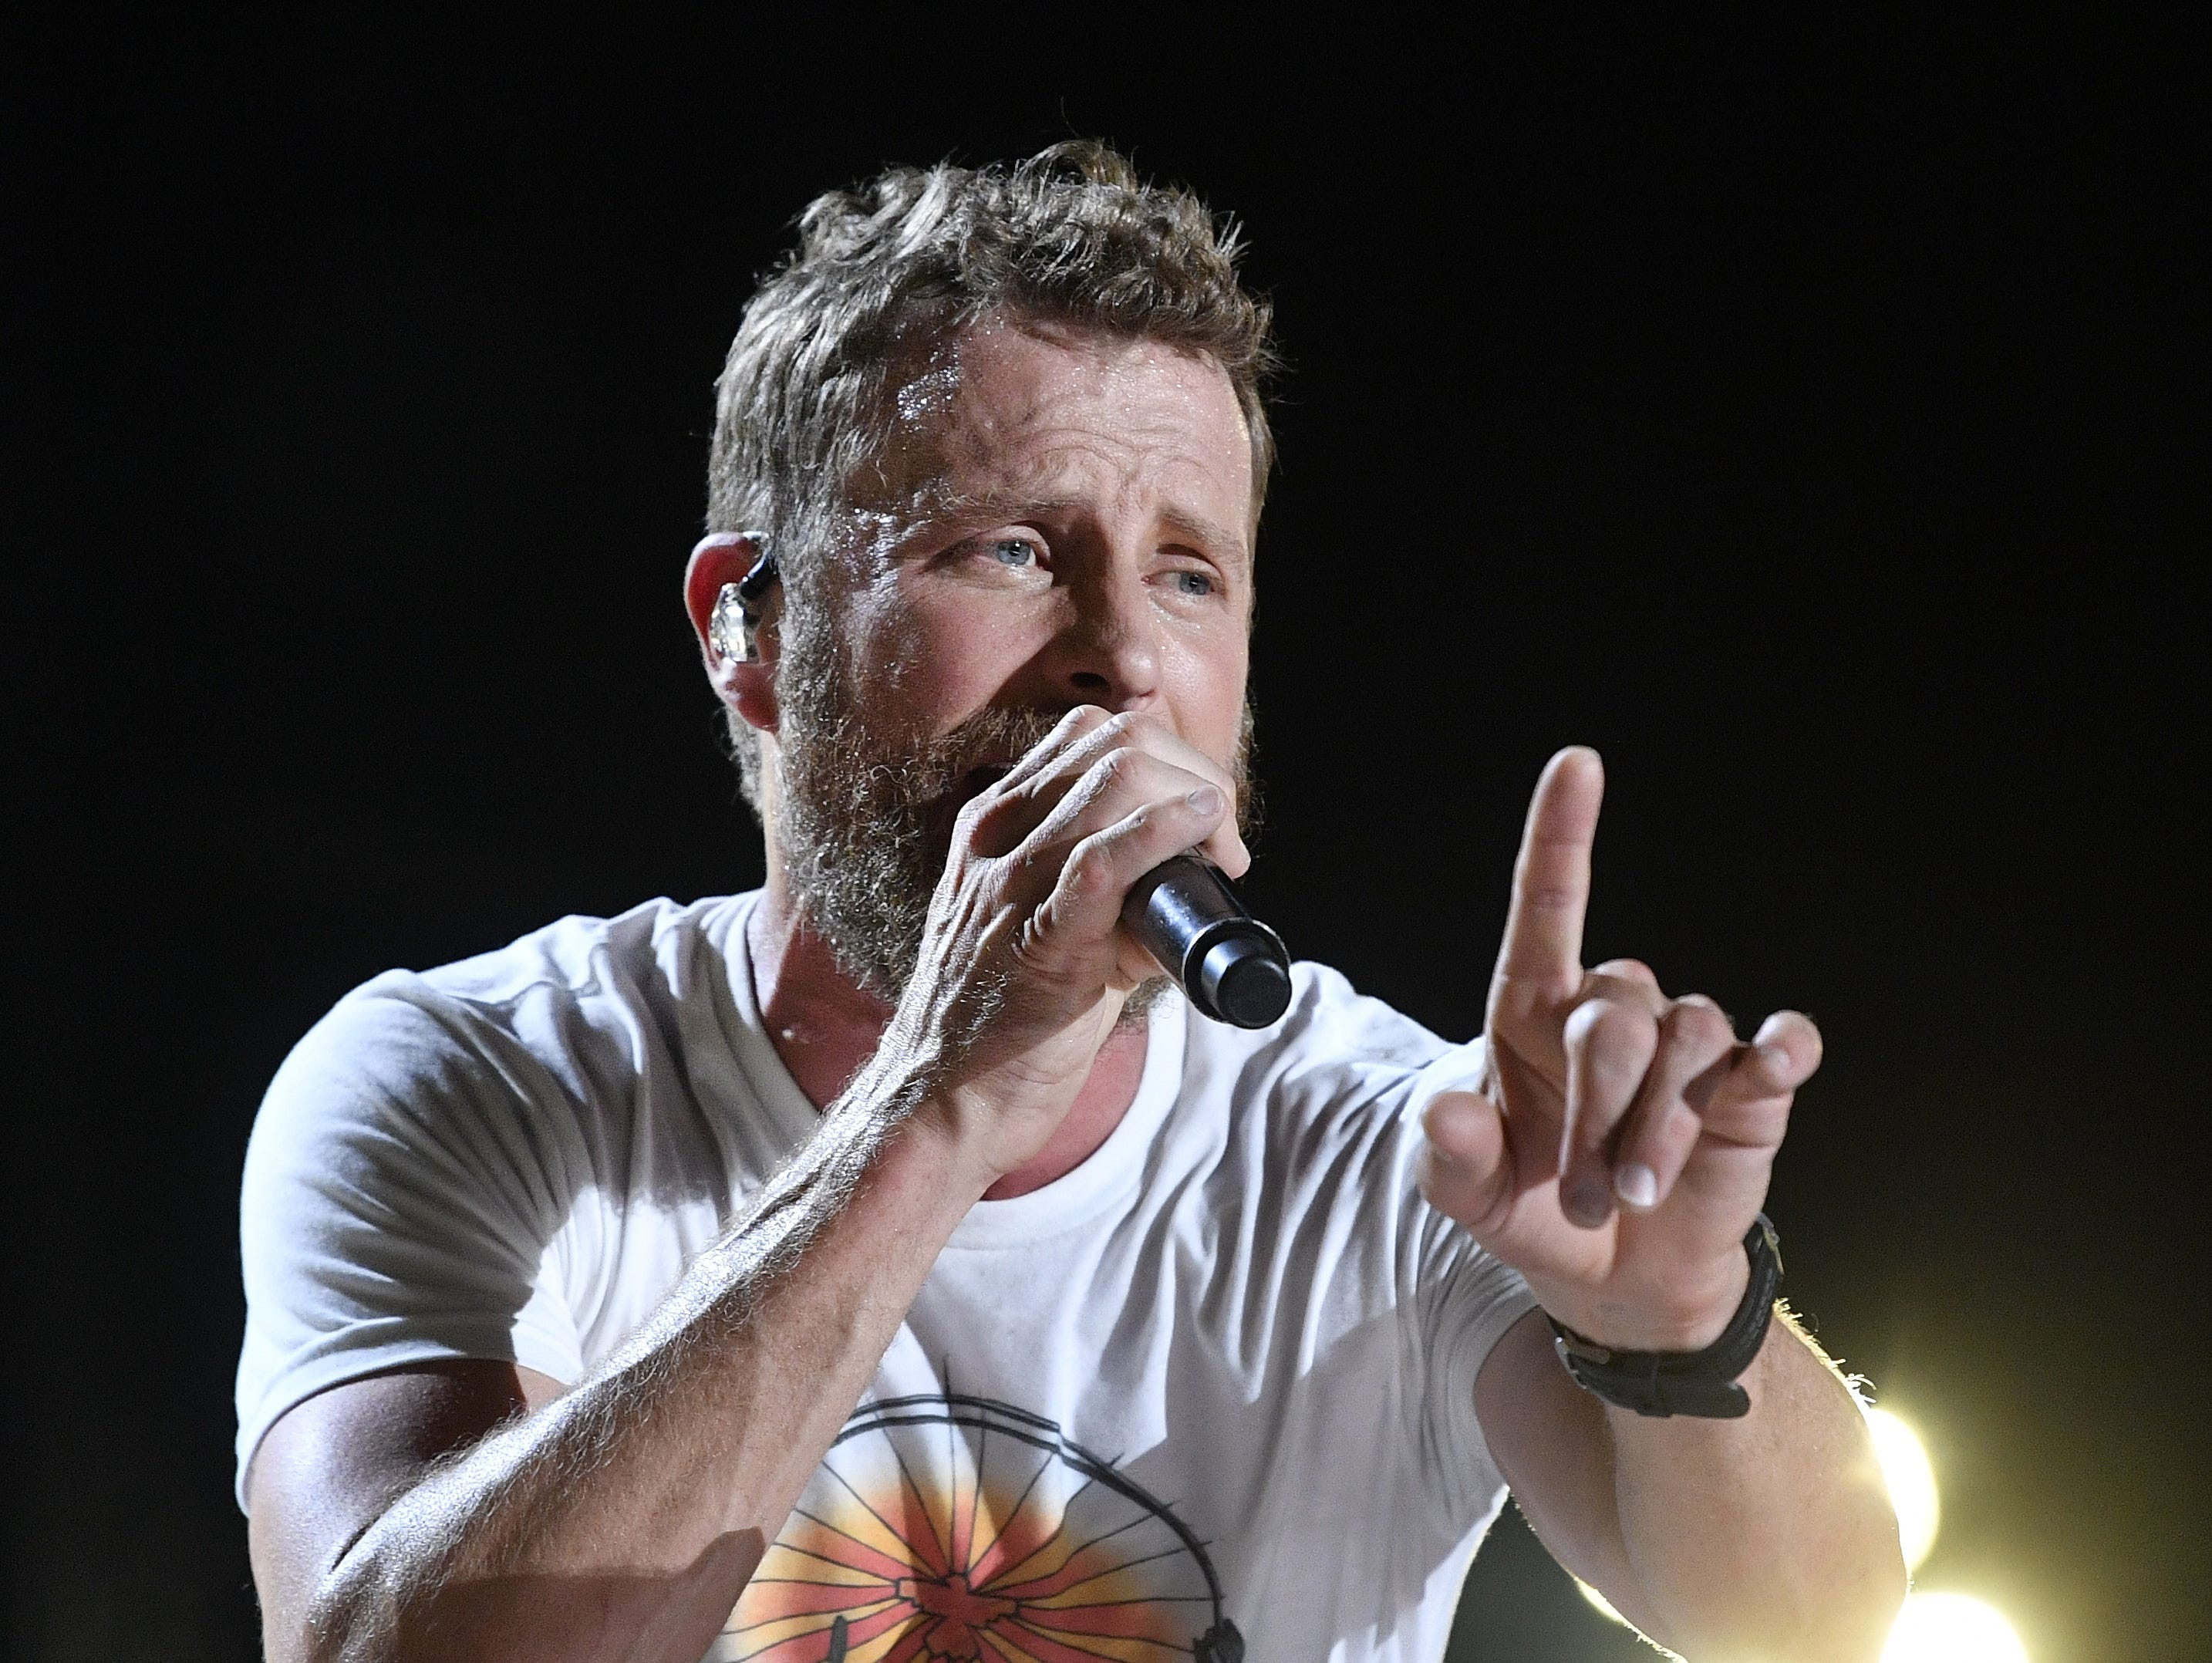 Dierks Bentley performs at the CMA Music Fest Sunday on June 10, 2018, in Nashville.